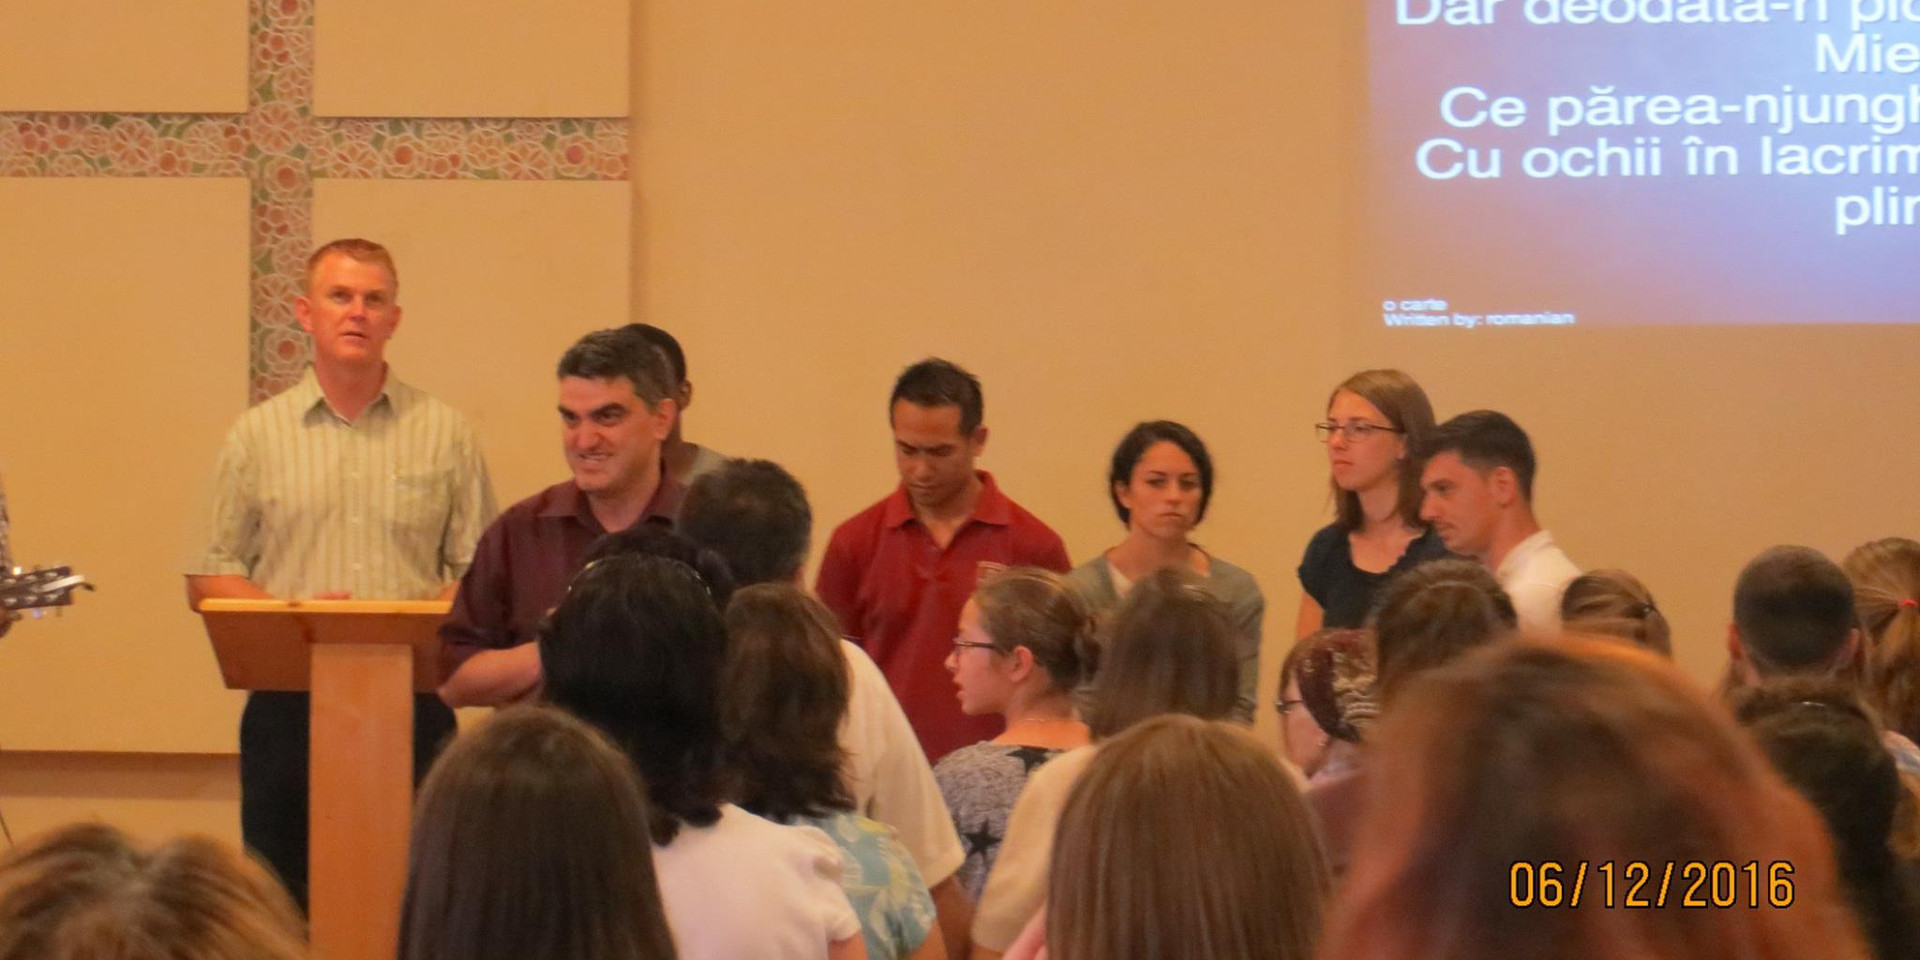 Prayers led by visiting missionaries